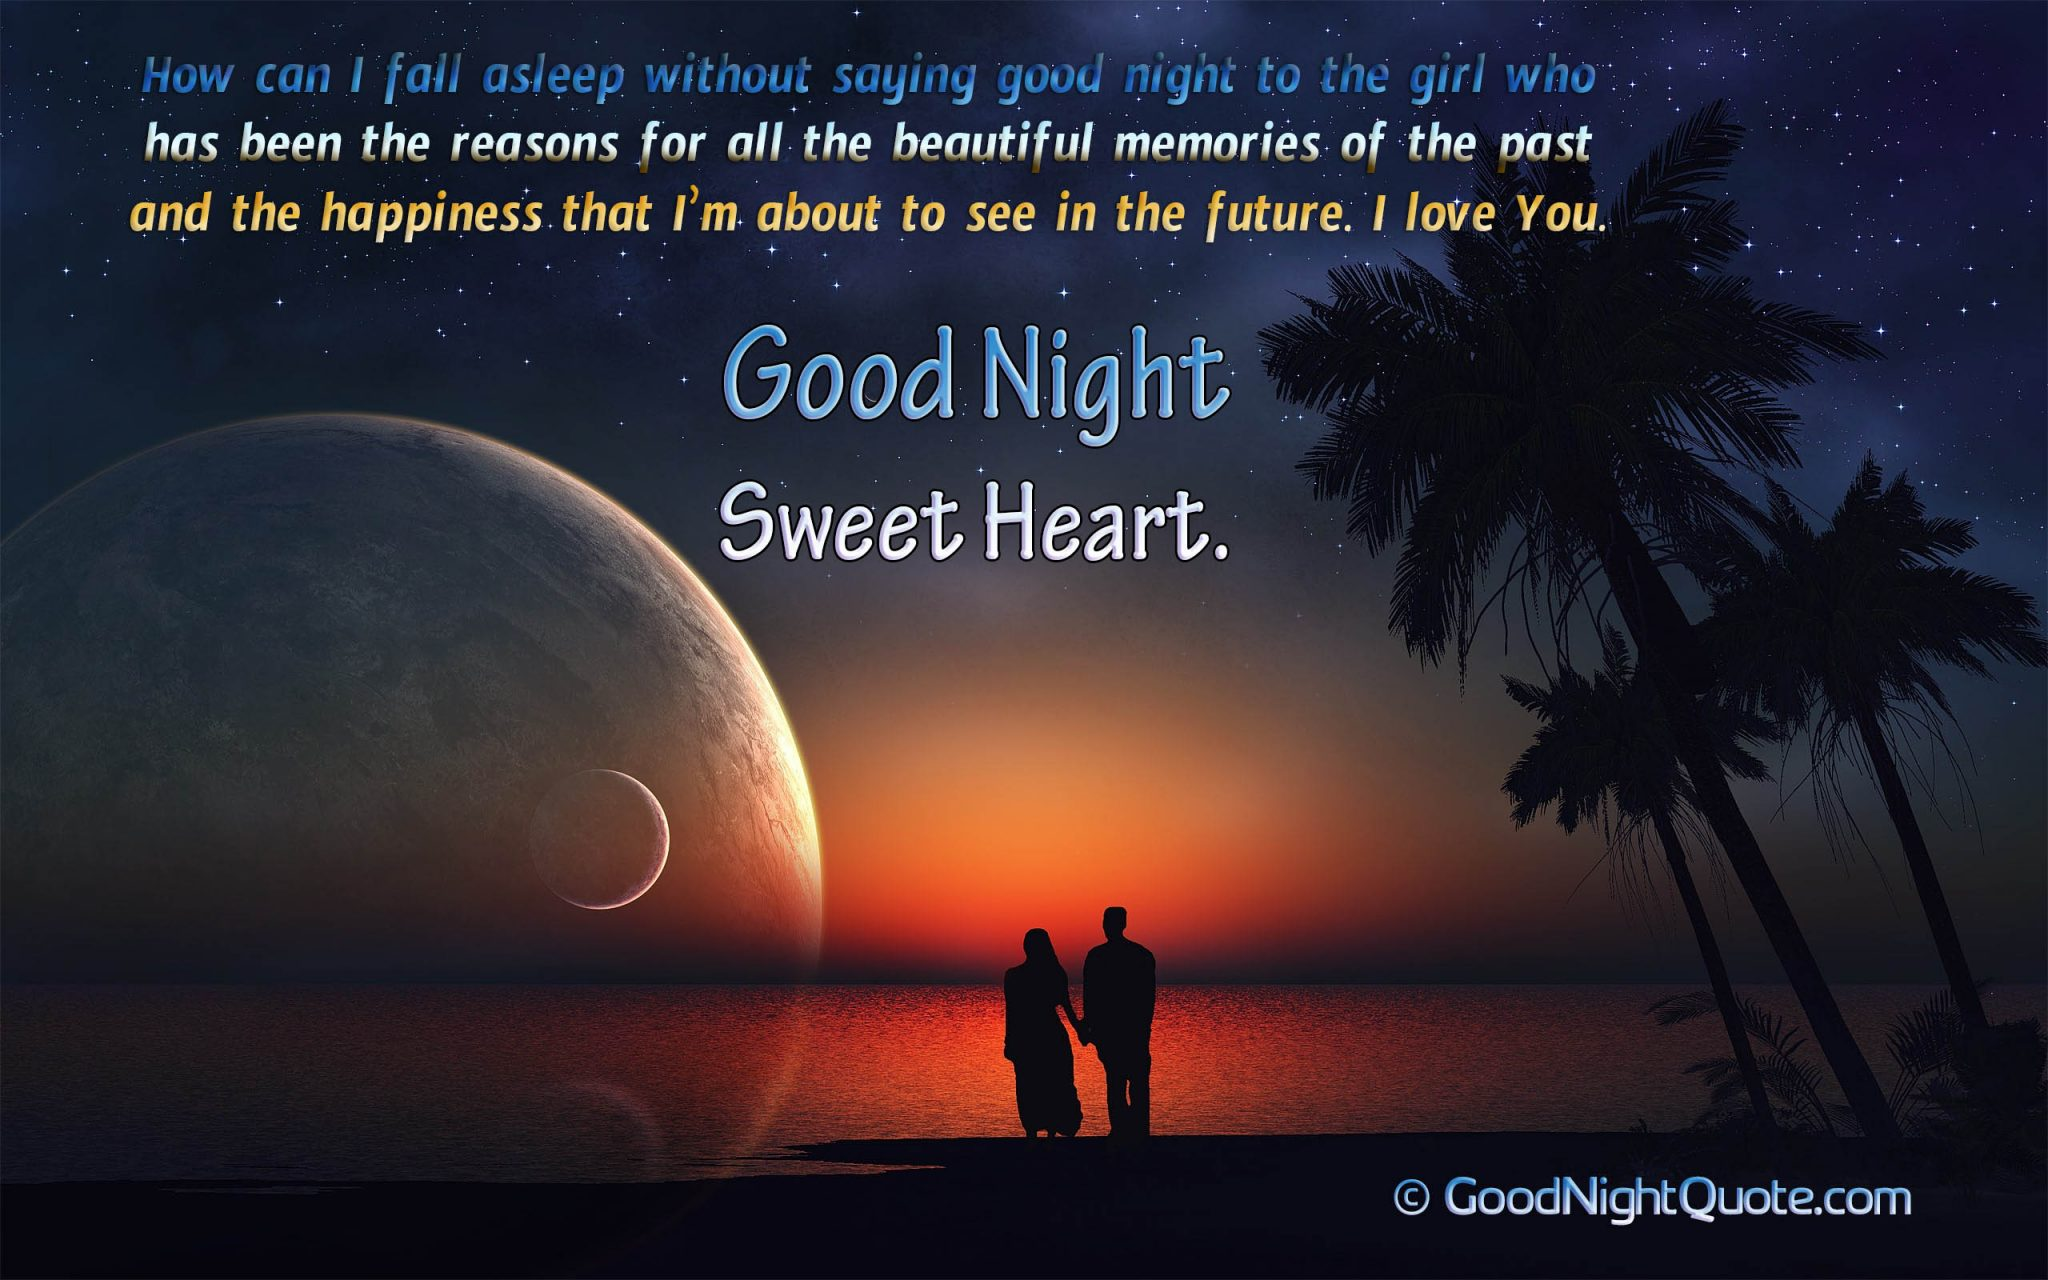 50 Cute & Romantic Good Night Messages for Her - Good Night ...